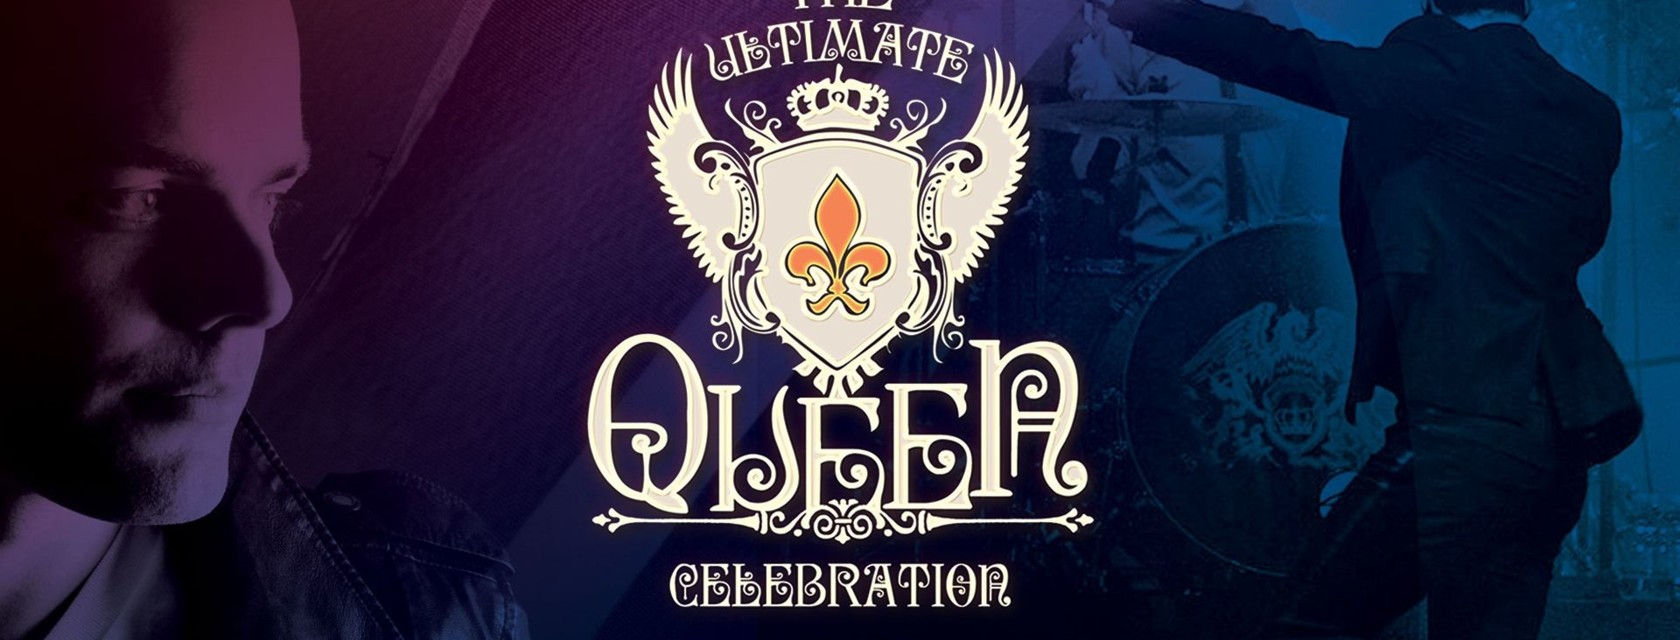 The Ultimate Queen Celebration avec Marc Martel Reporté en 2021